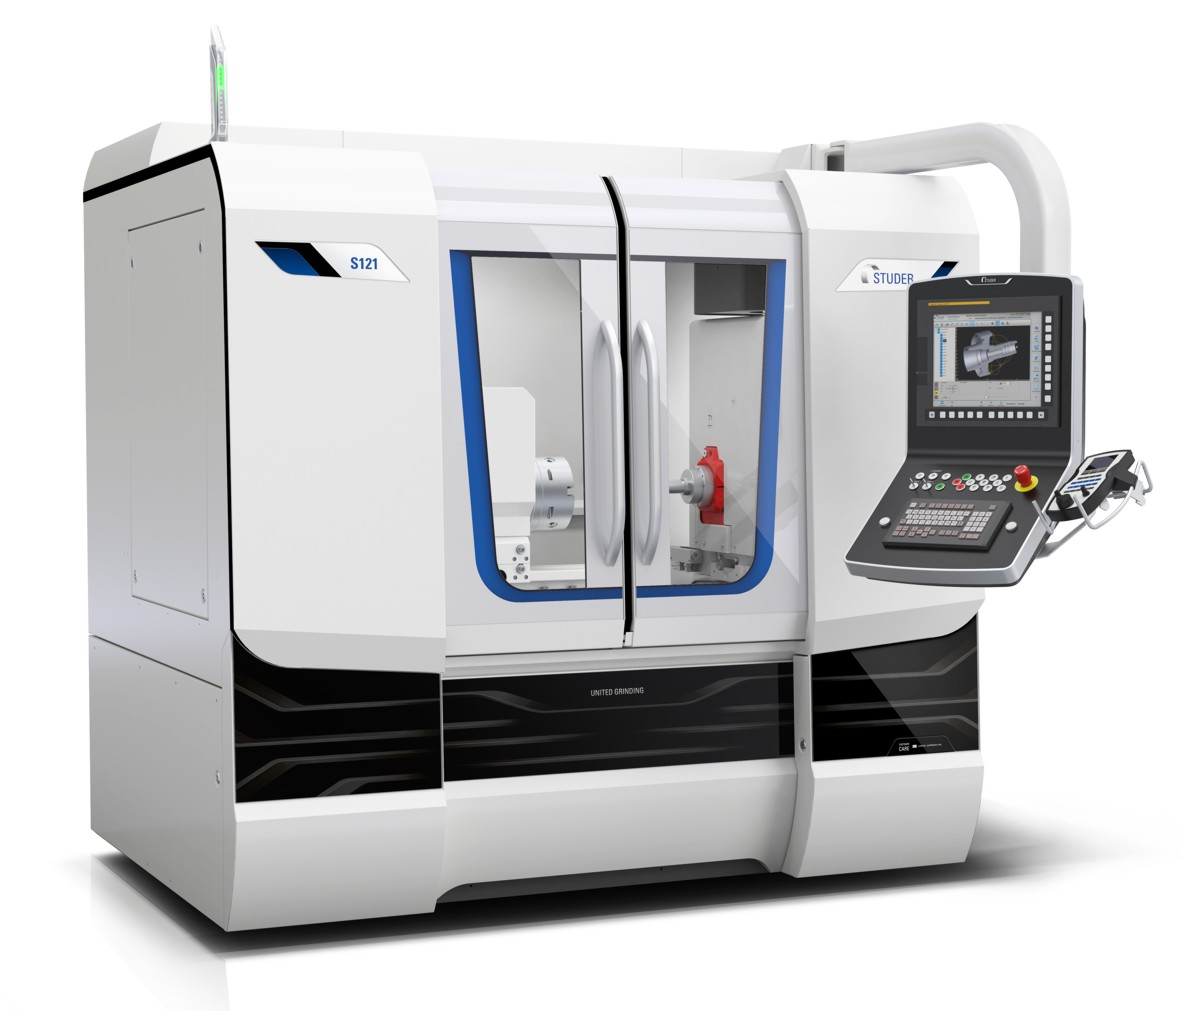 Studer S121 CNC Internal Grinding Machine for diverse internal grinding applications